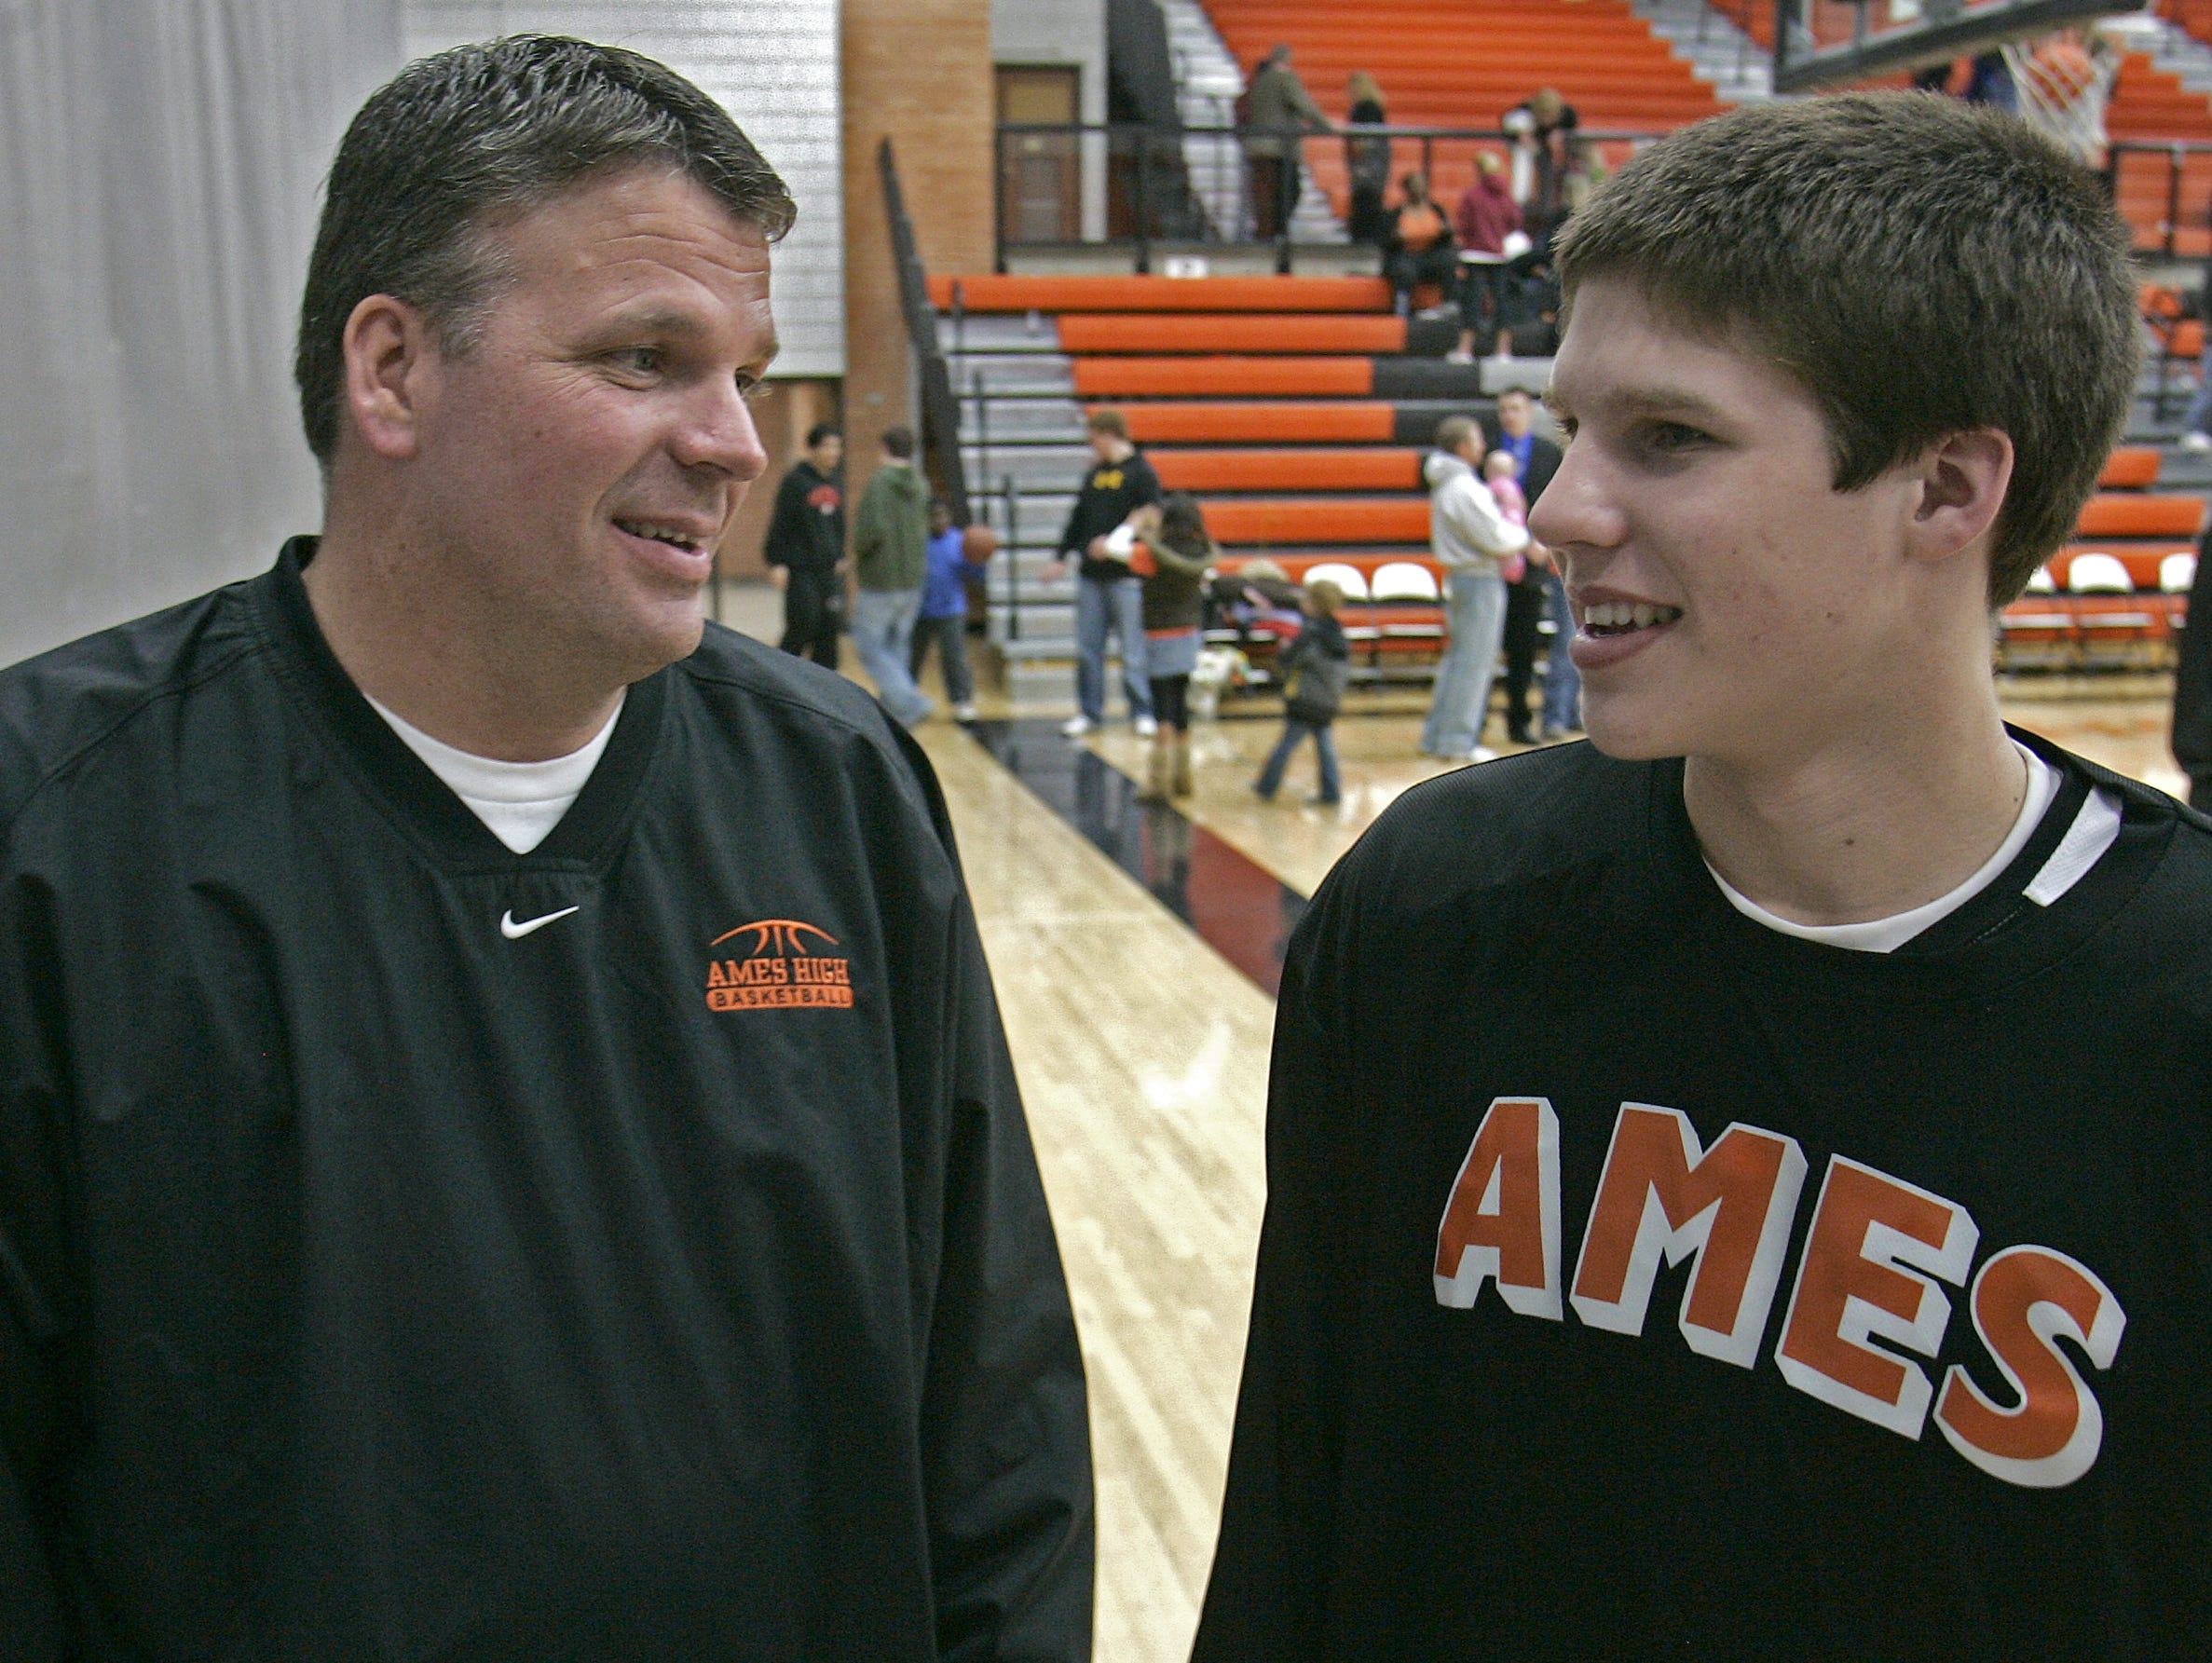 Former Iowa State head men's basketball coach Greg McDermott, left, talked with his son, former Ames High School basketball player Doug McDermott, after Doug scored 18 points in a win over Ft. Dodge on Feb. 12, 2009.